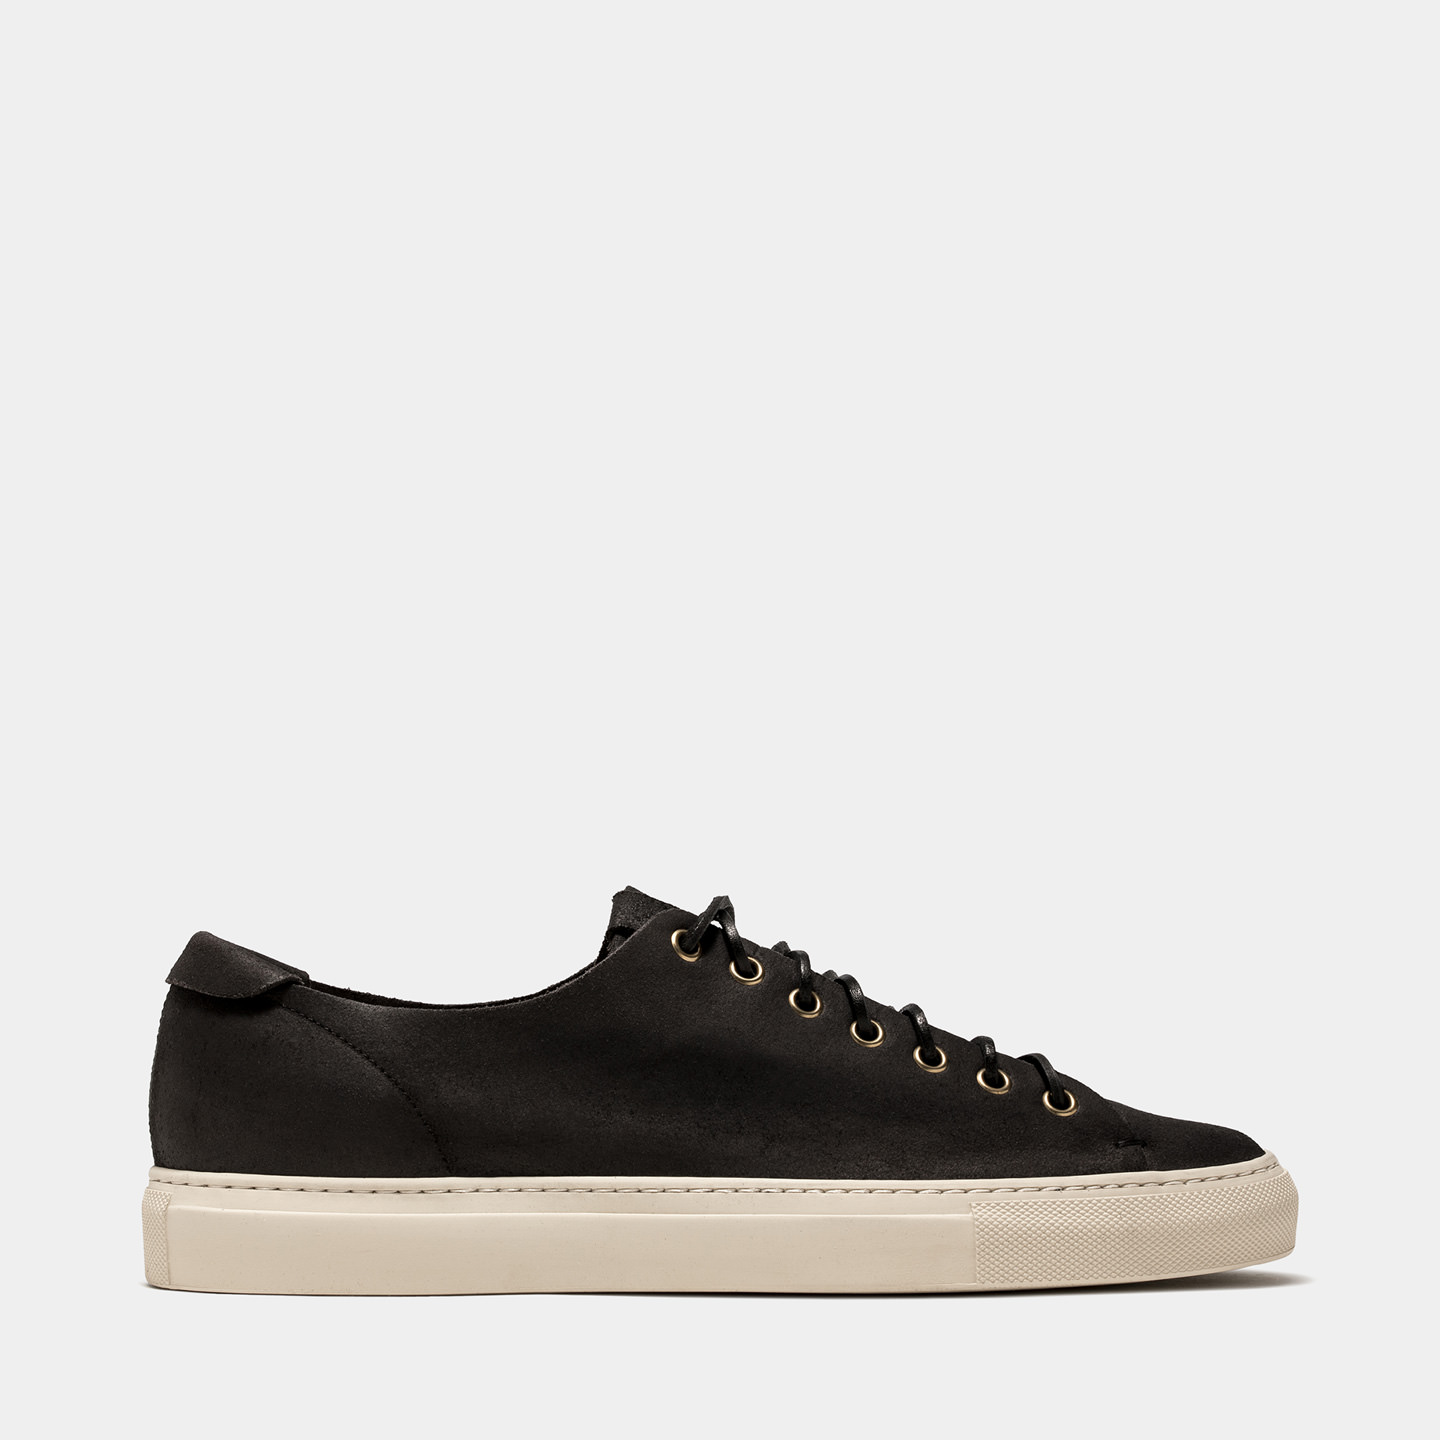 BUTTERO: TANINO SNEAKERS IN BLACK BIANCHETTO LEATHER